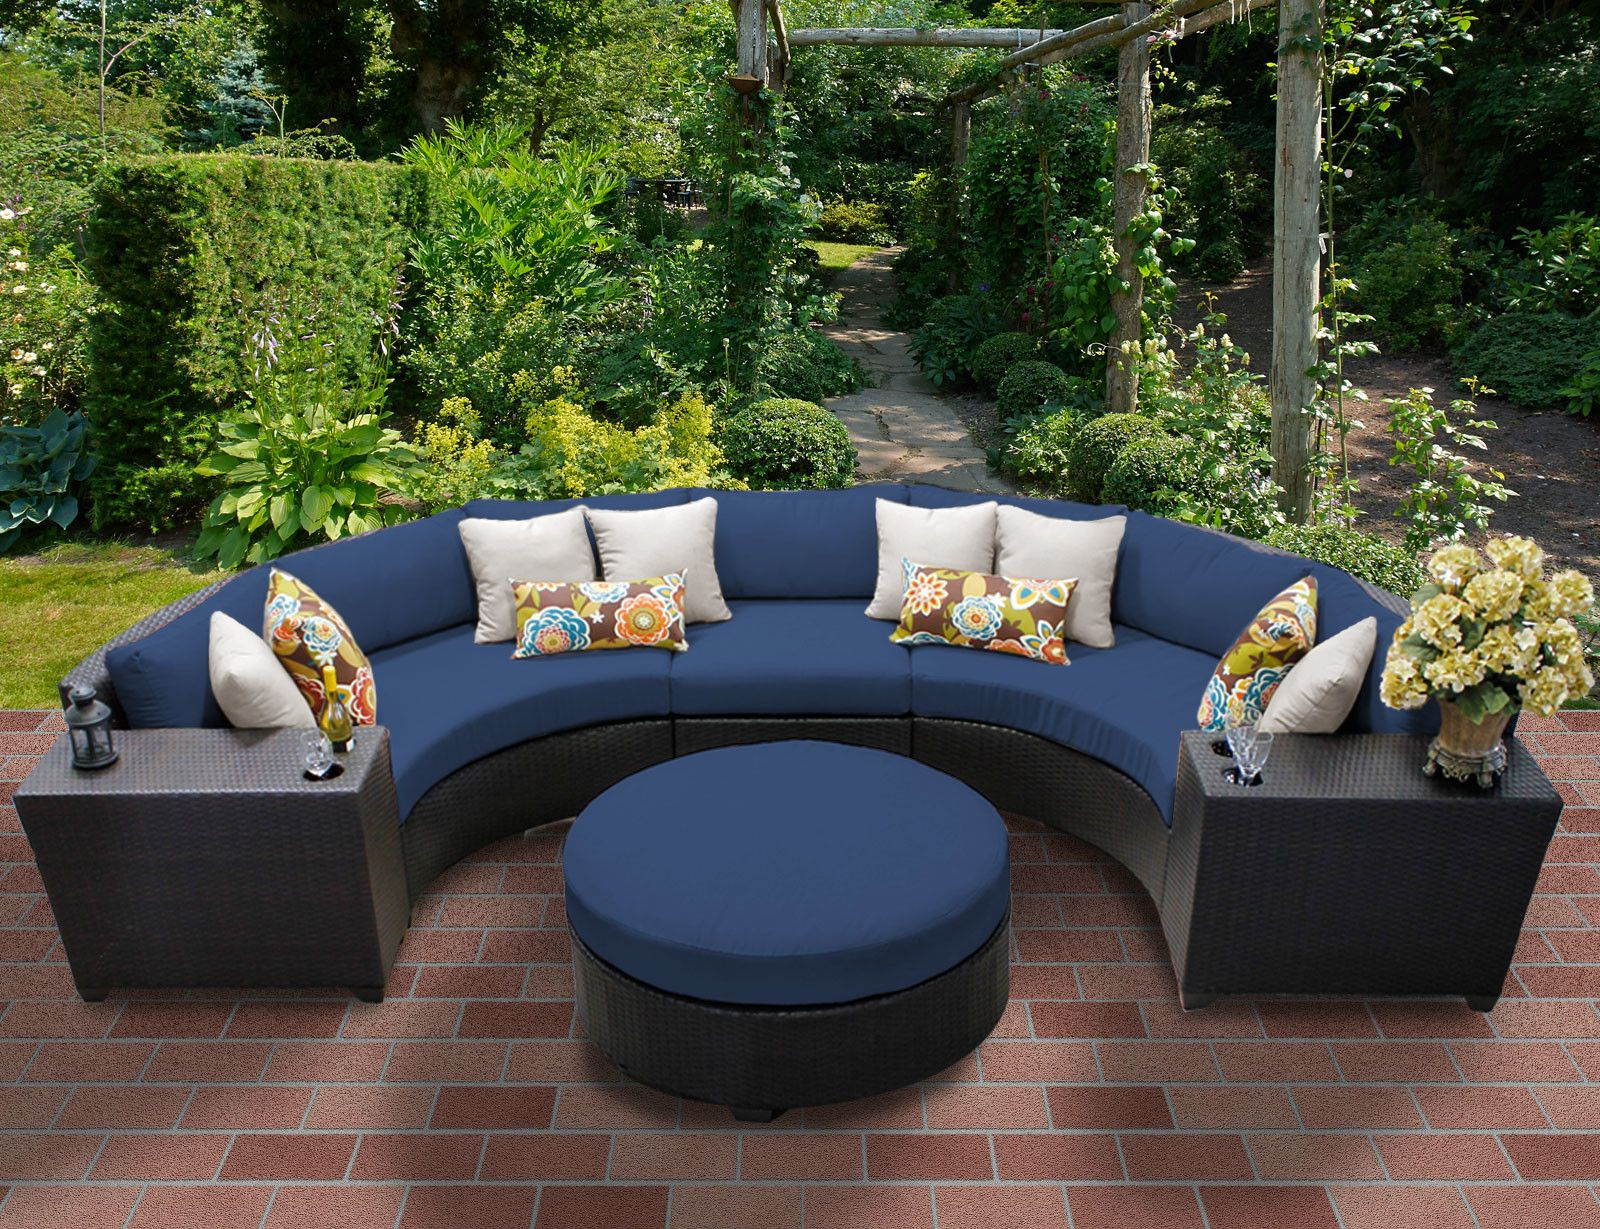 Most Recently Released Tegan Patio Sofas With Cushions With Regard To Tegan 6 Piece Sectional Seating Group With Cushions (View 9 of 25)